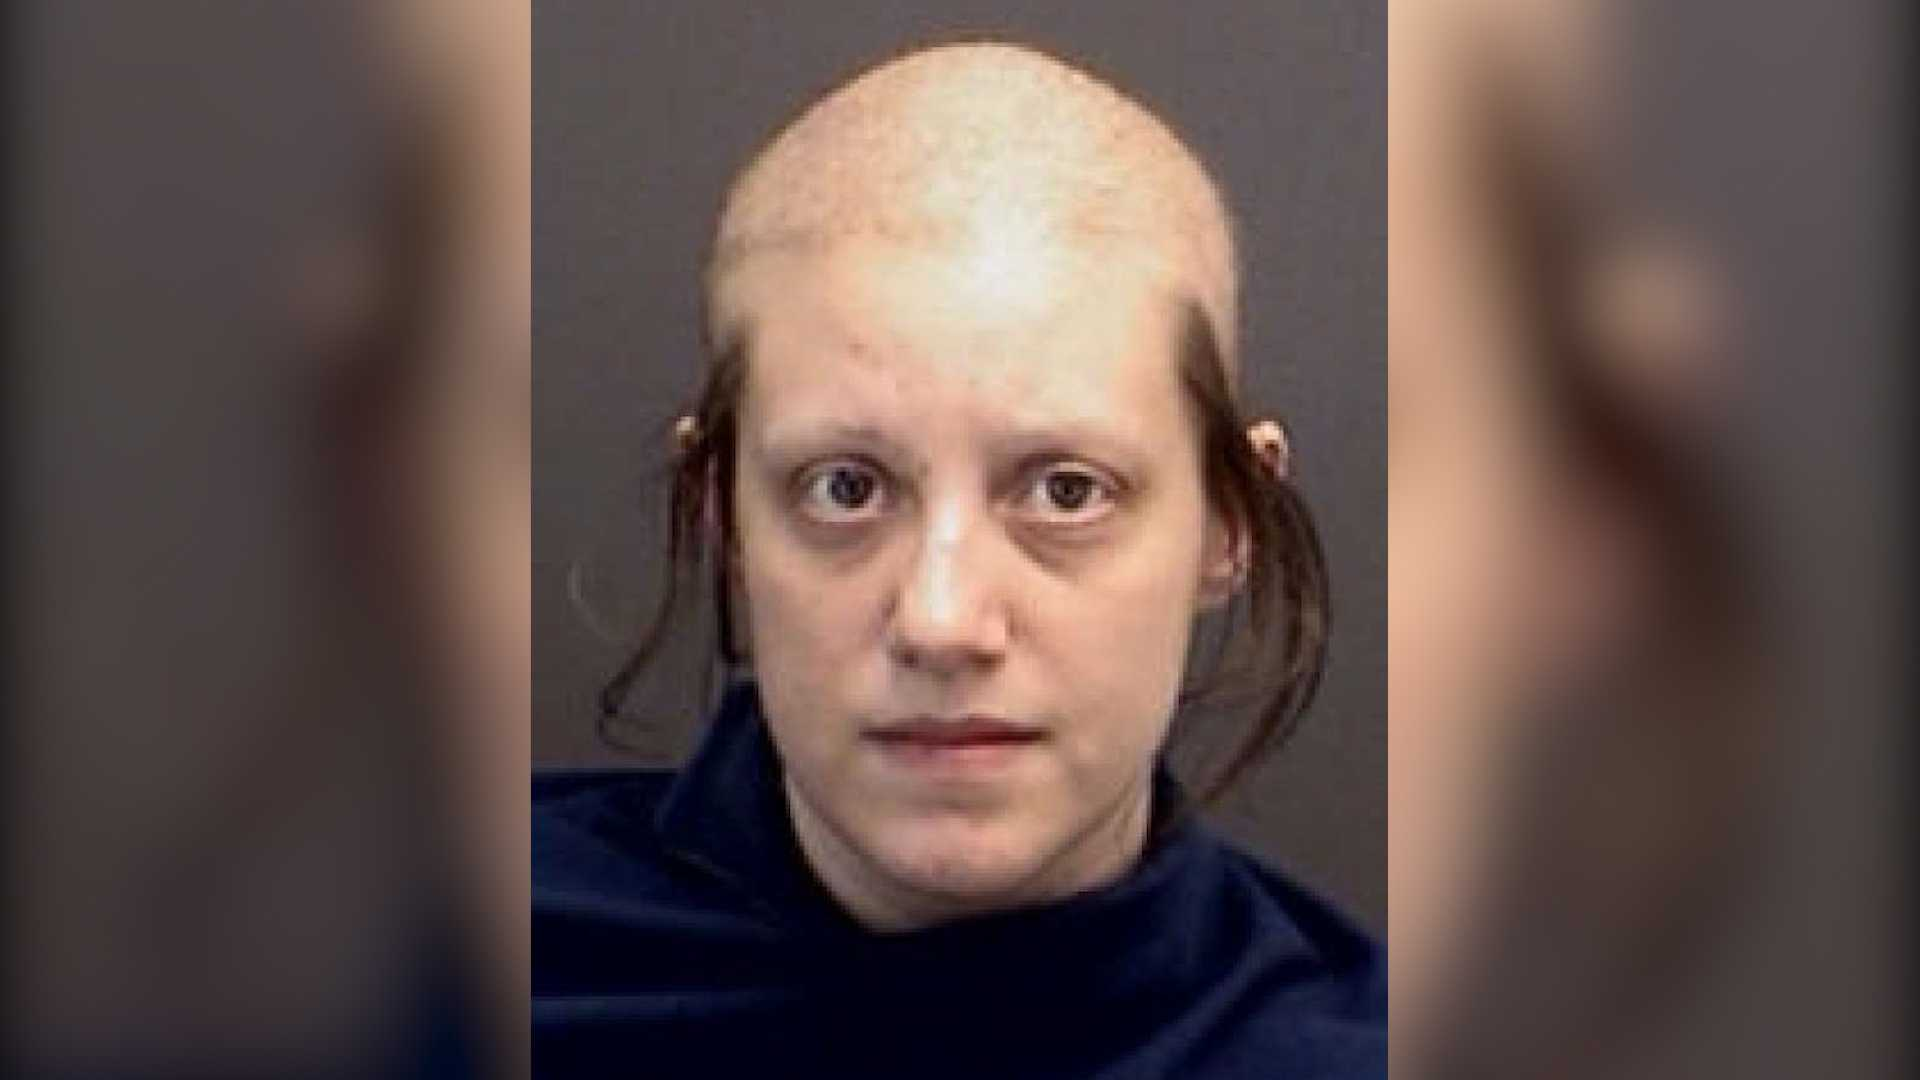 Sara Elizabeth Russell was arrested in North Texas for allegedly smuggling drugs into a correctional facility